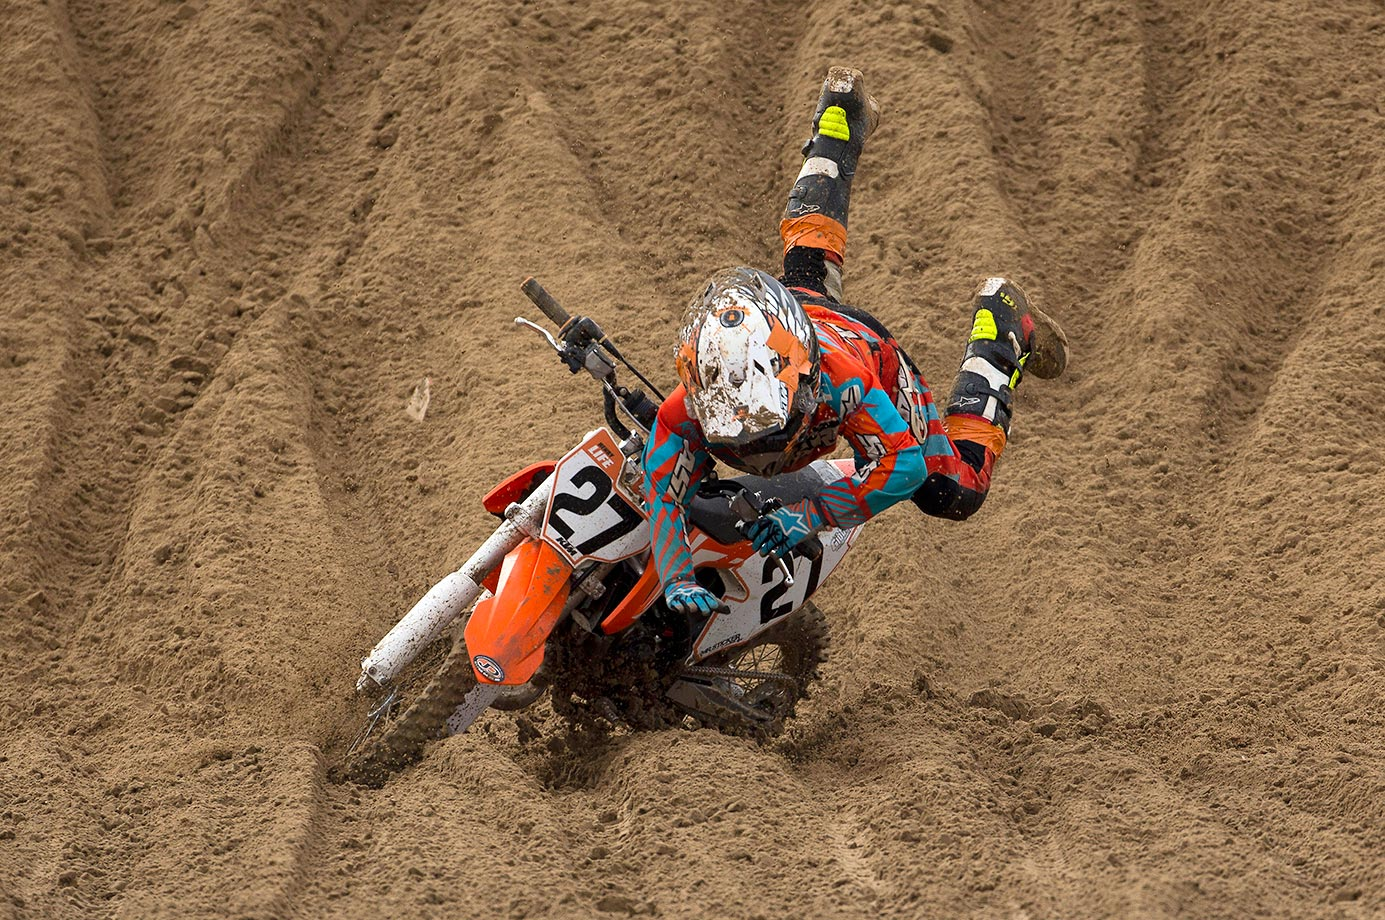 A rider in the Junior 65CC Class falls during the RHL Weston Beach Race in England.